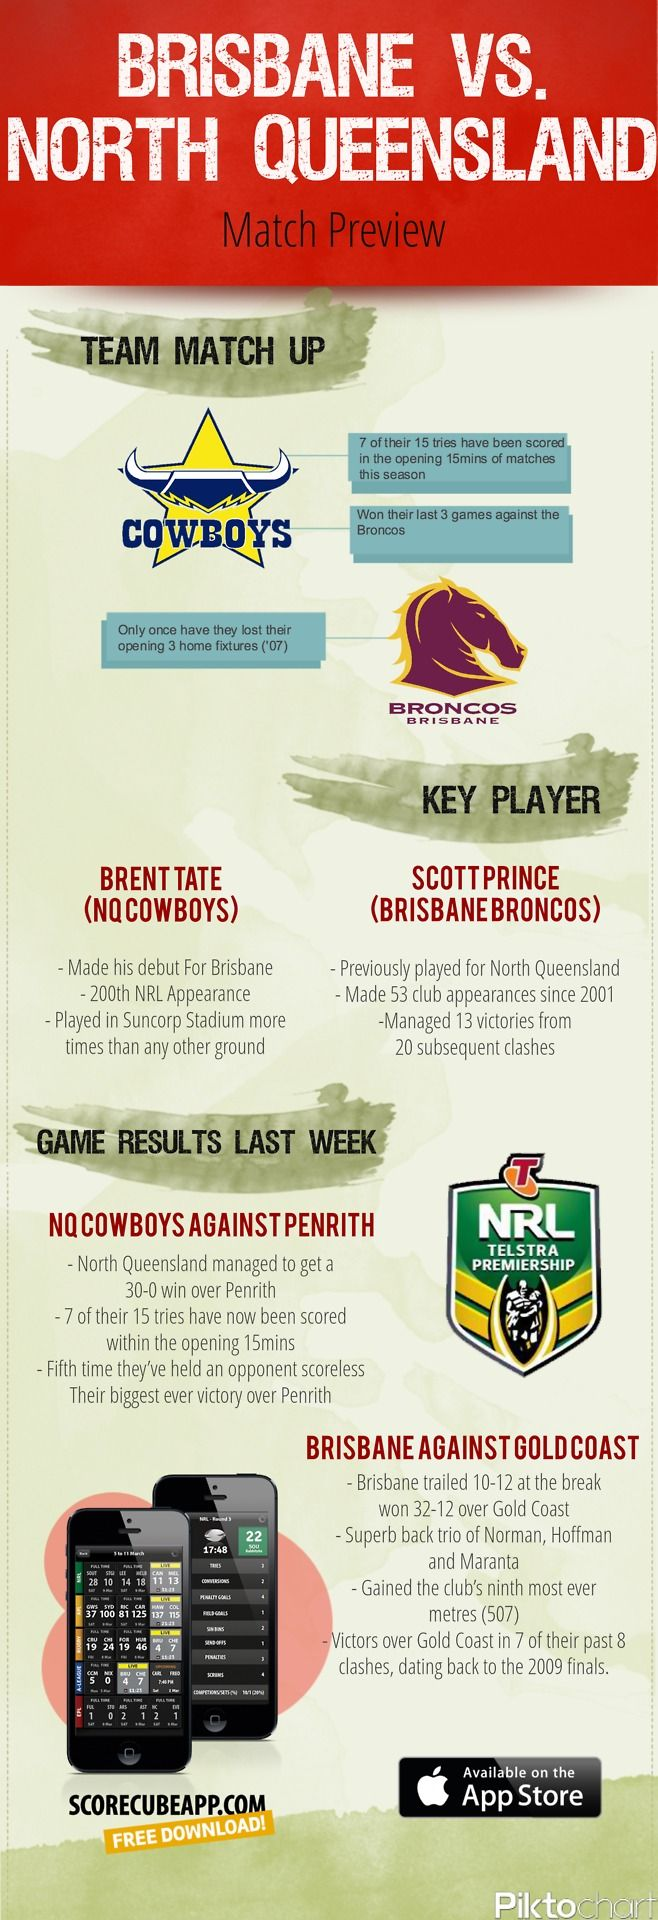 Here's the match preview of Brisbane Broncos and North